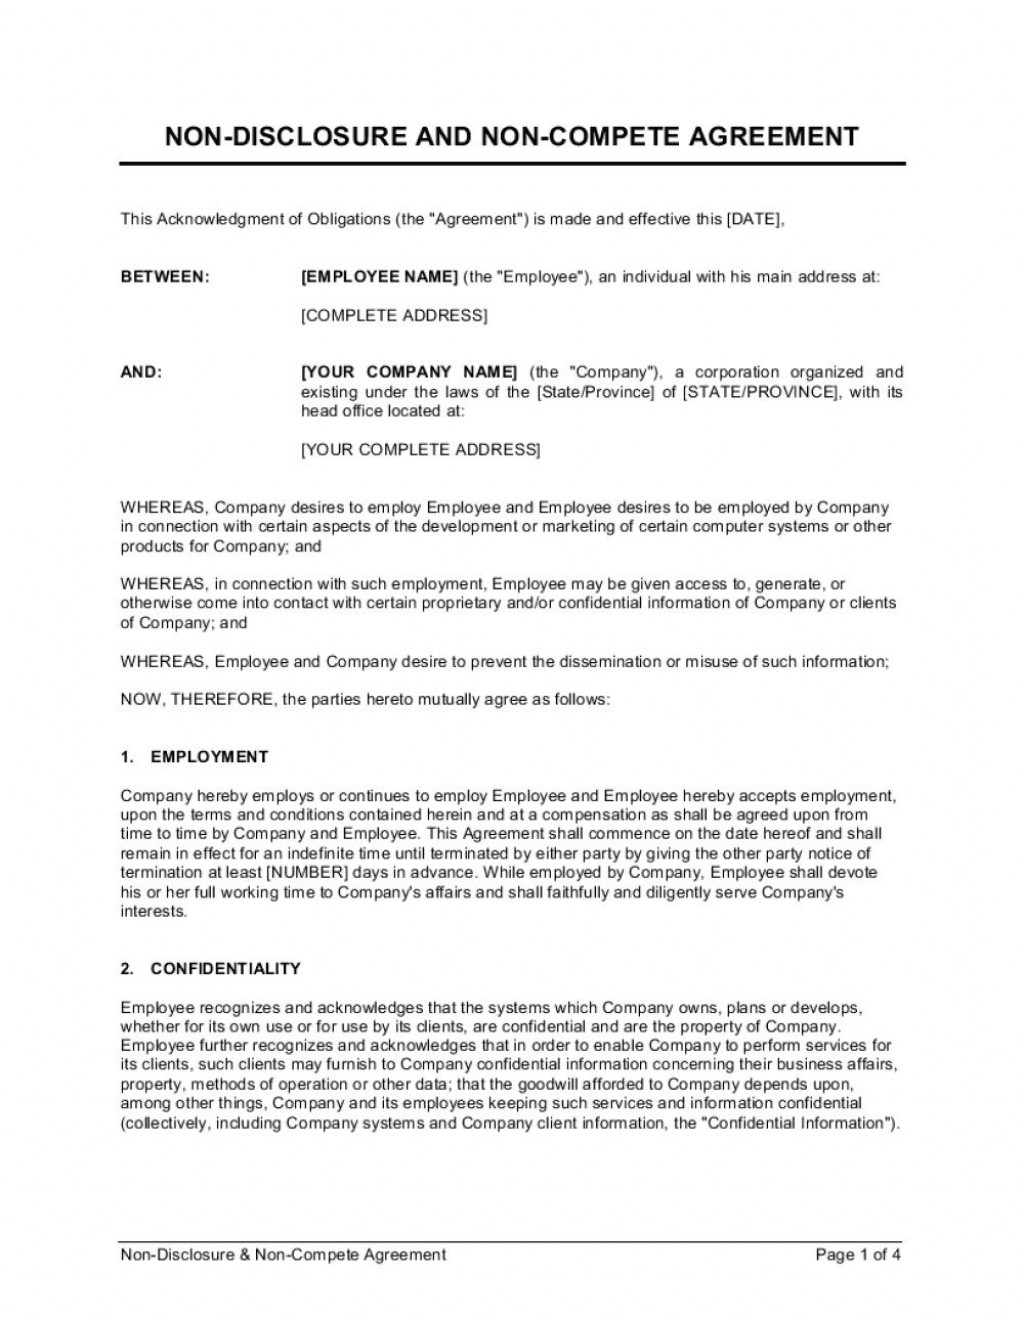 008 Archaicawful Employee Non Compete Agreement Template Example  Free Confidentiality Non-compete DisclosureLarge